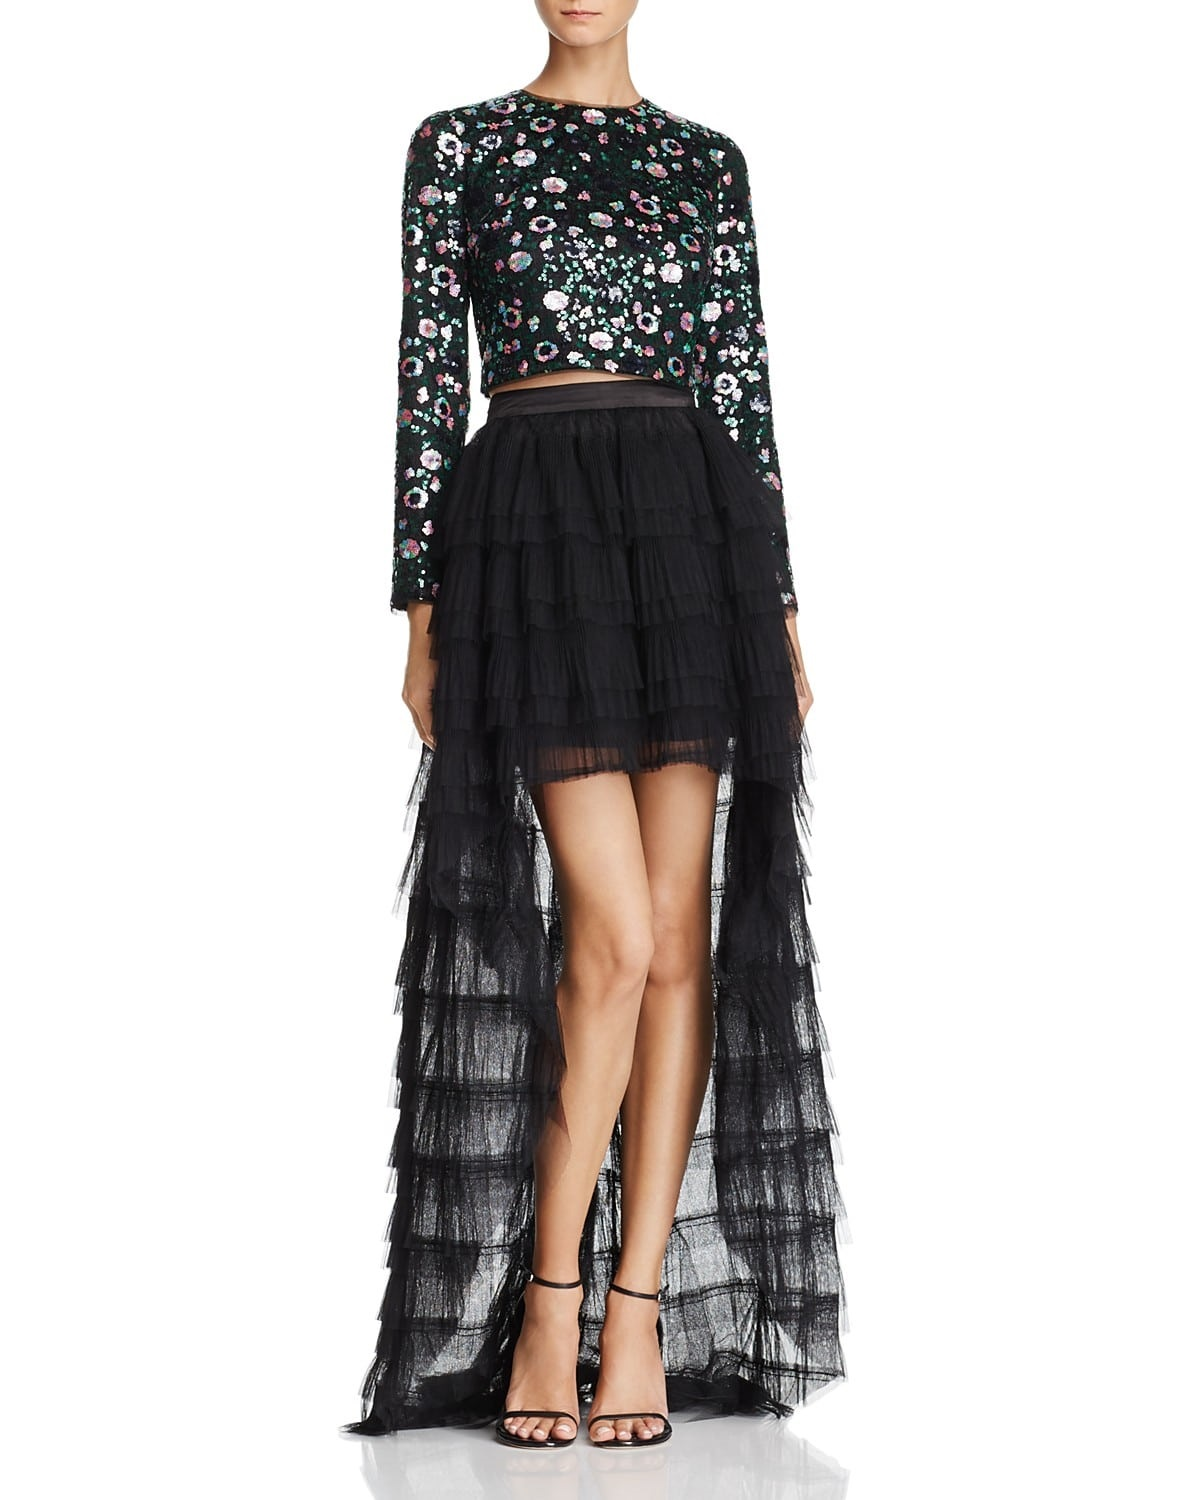 New Years Eve Outfit with What You Own, Zendaya x Aqua beaded top and tulle black skirt